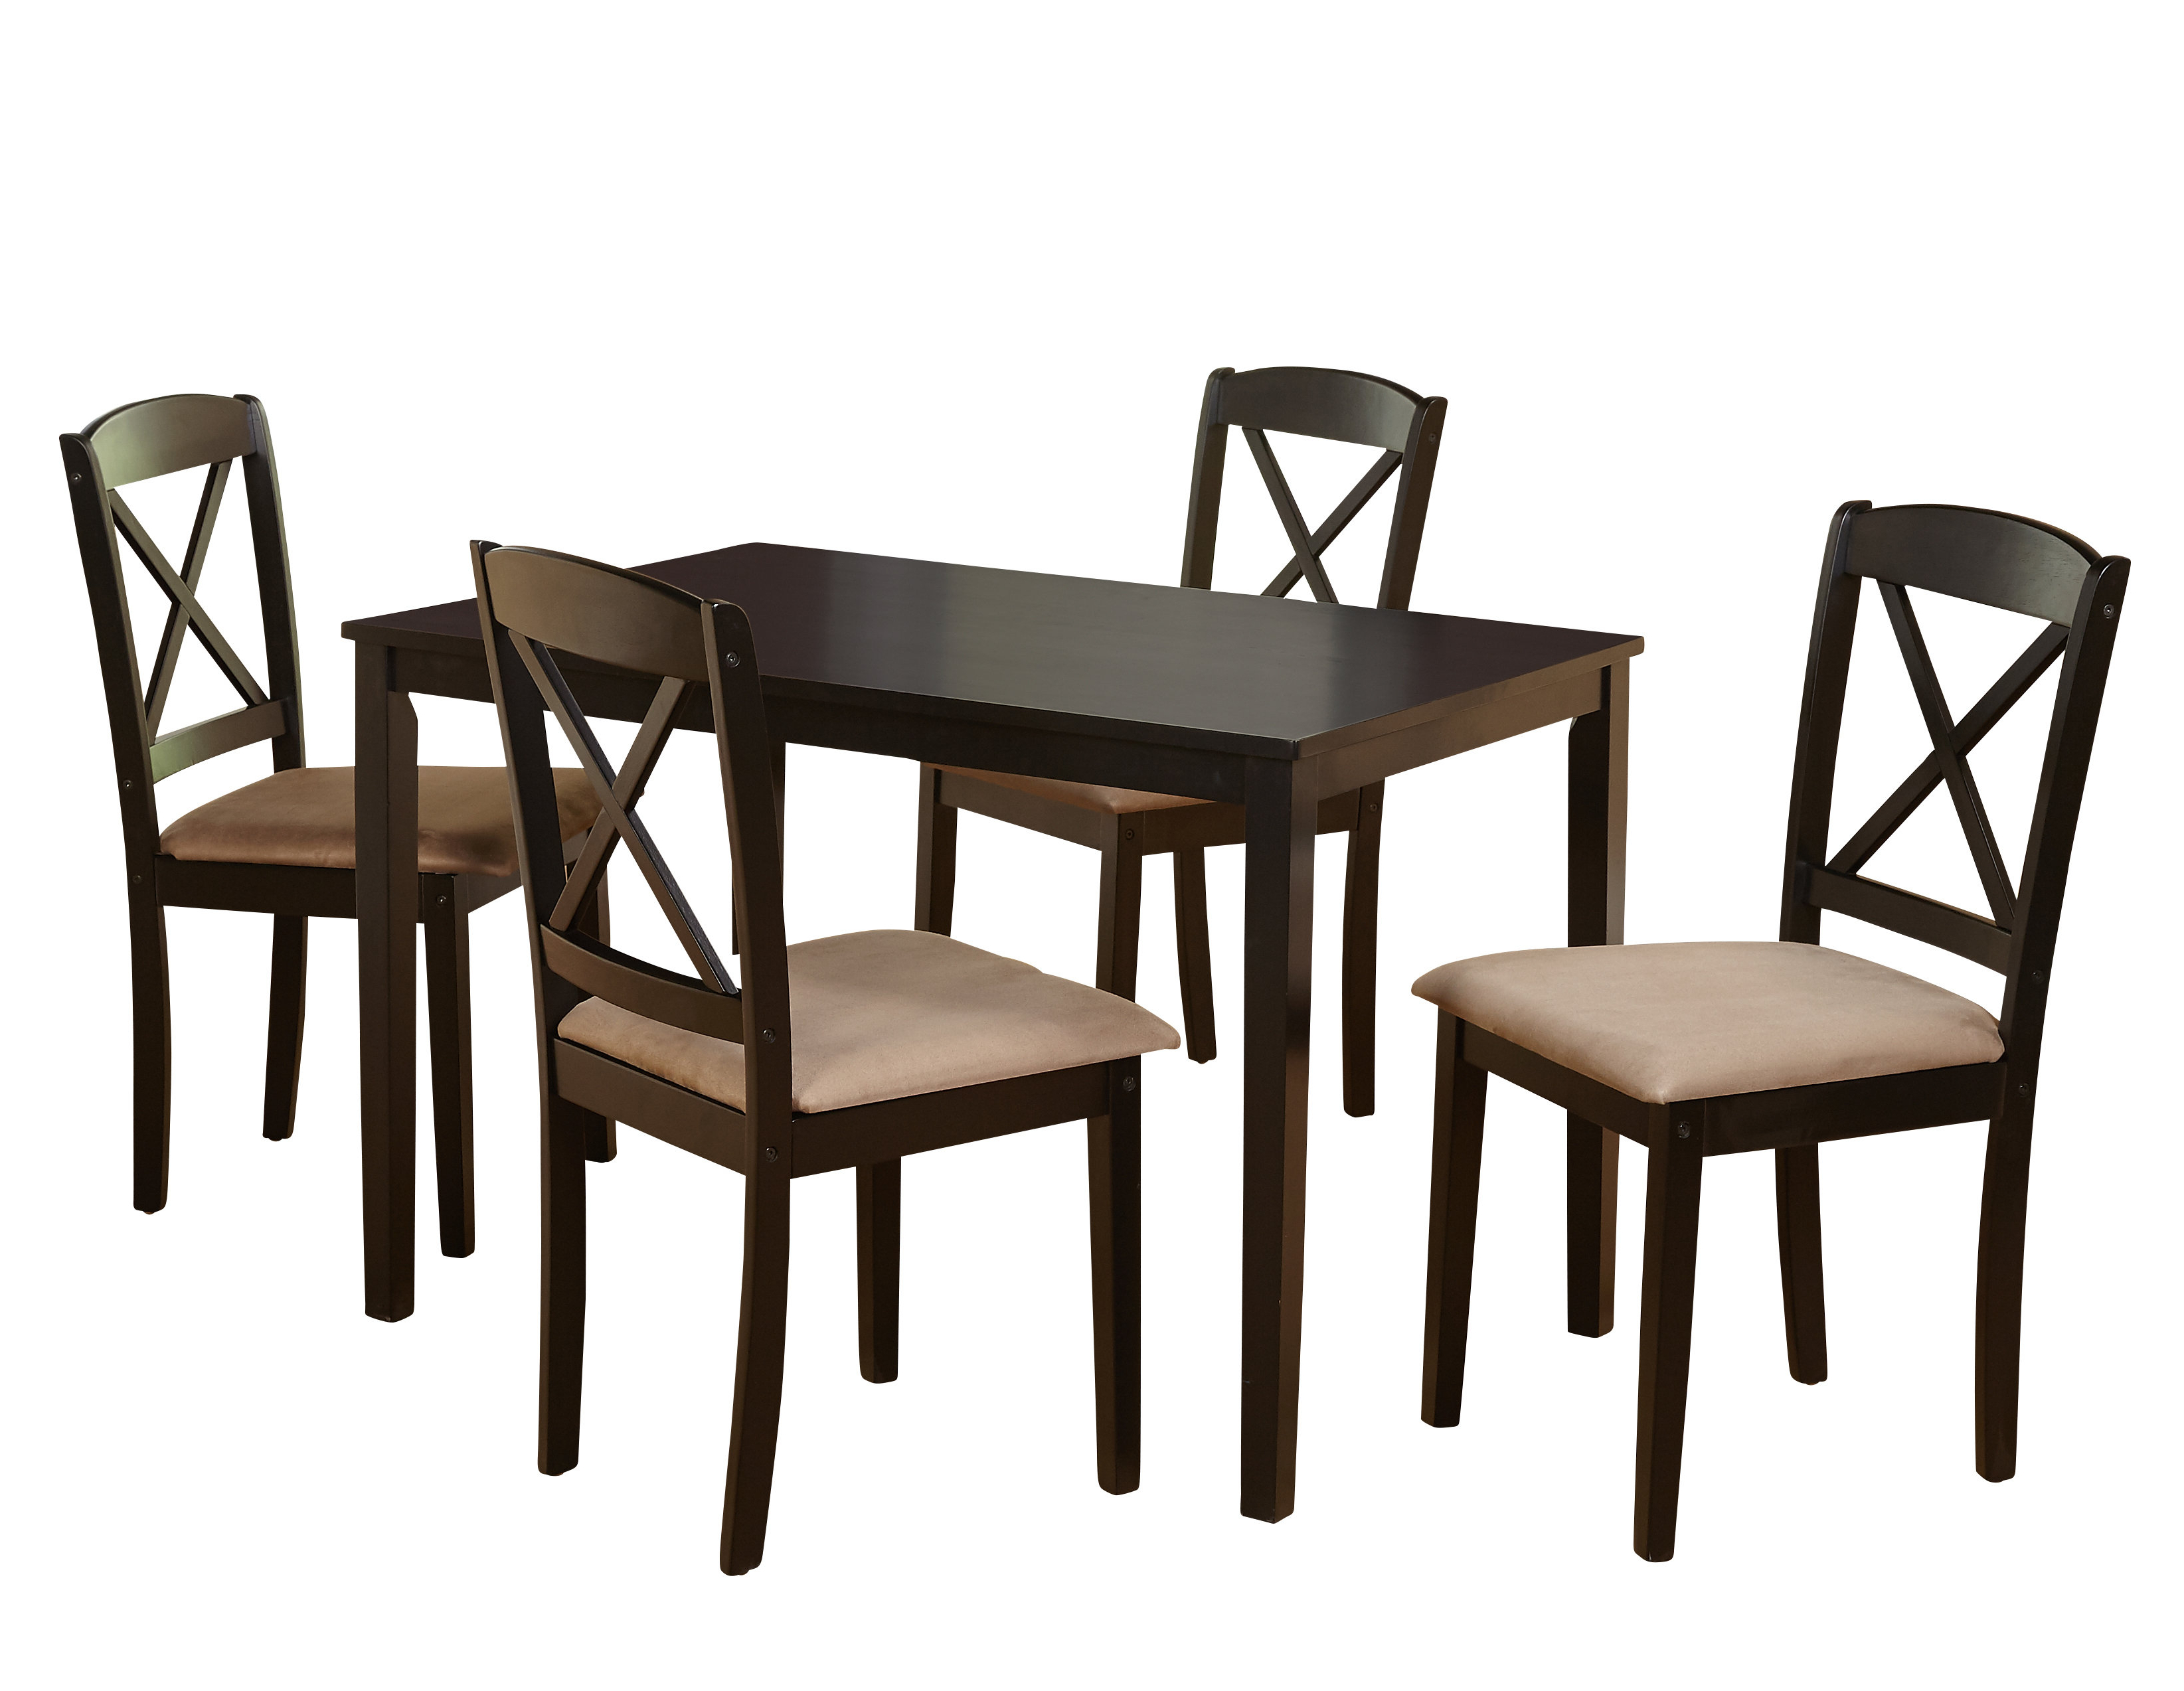 Scarlett 5 Piece Dining Set Regarding Most Recently Released Pattonsburg 5 Piece Dining Sets (View 2 of 20)